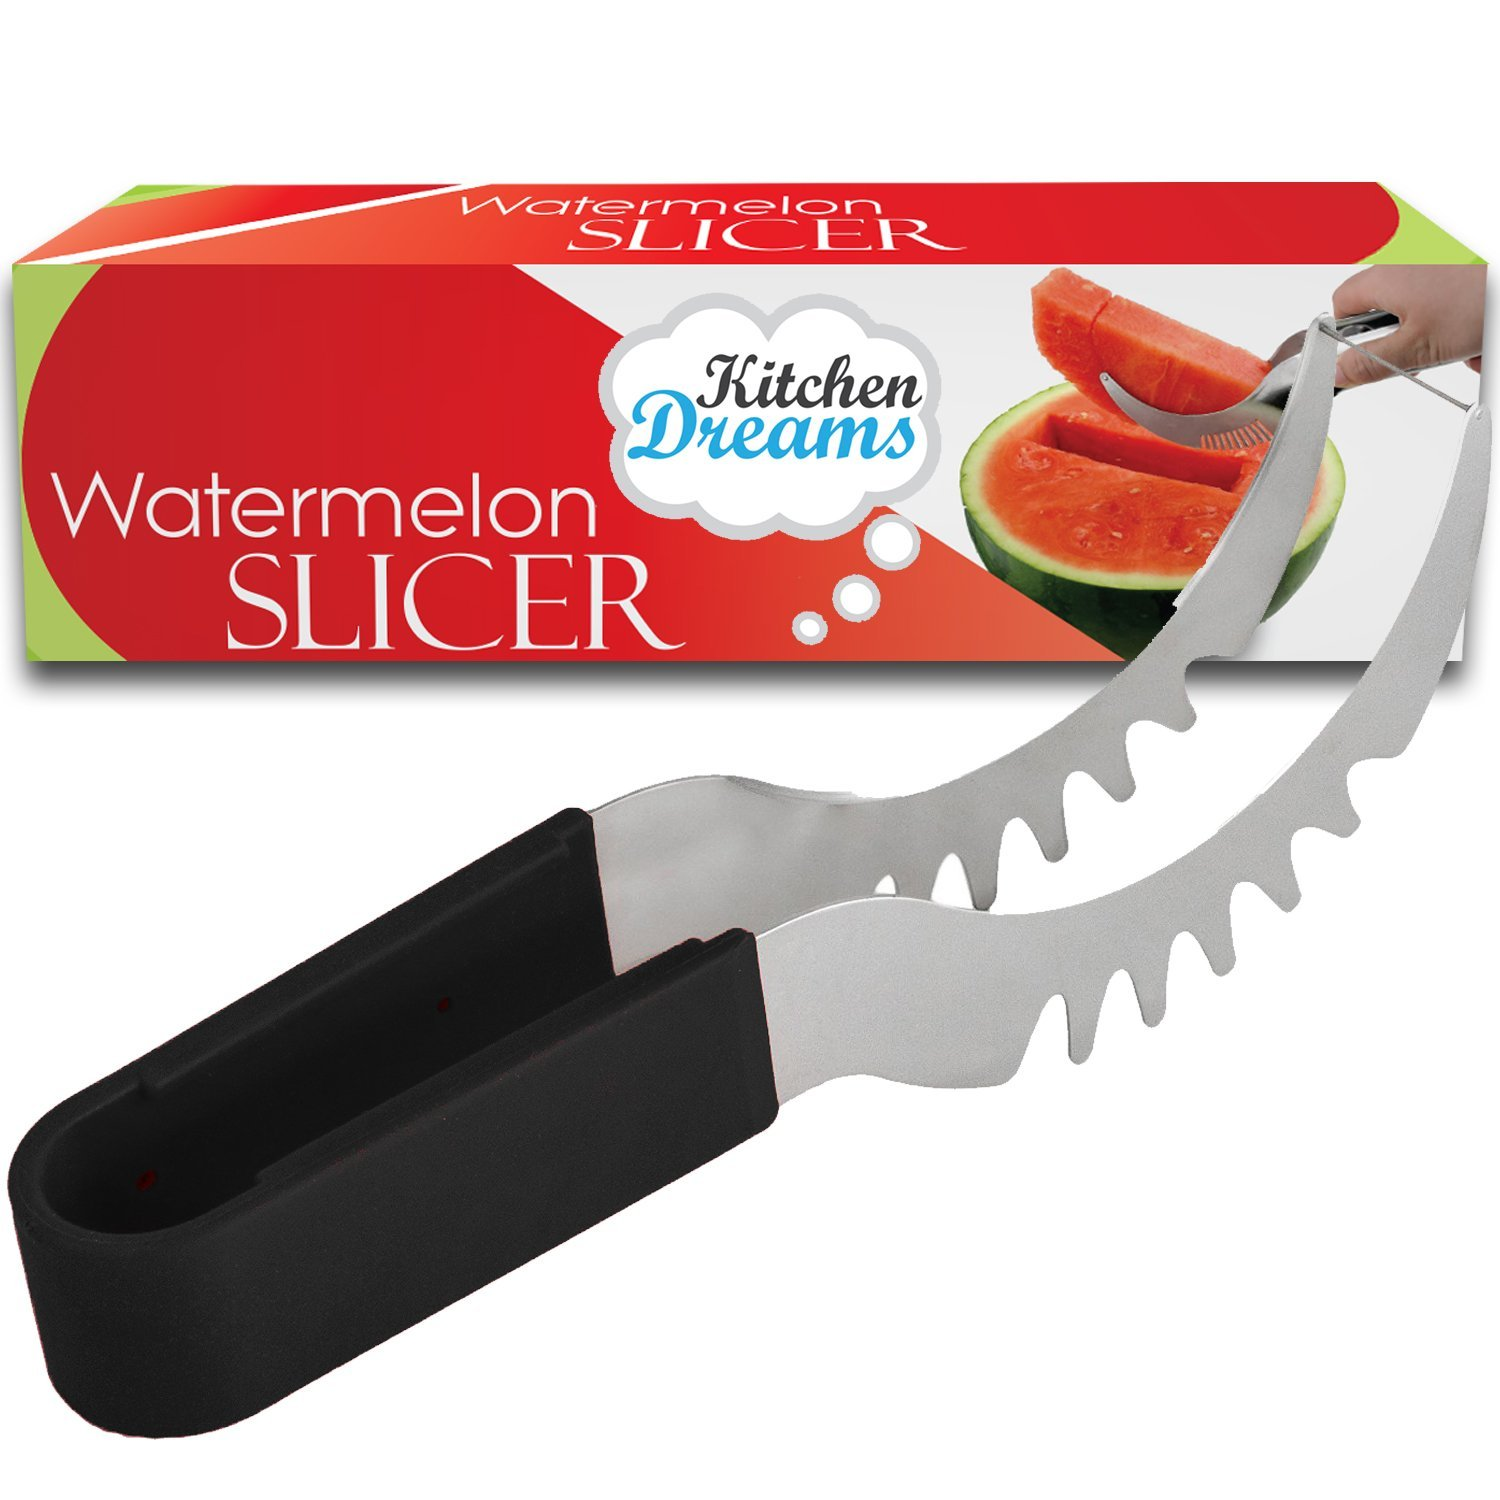 Watermelon Slicer Corer & Saver, For Melons & More, Cutter Tongs, Stainless Steel Knife Peeler by Kitchen Dreams